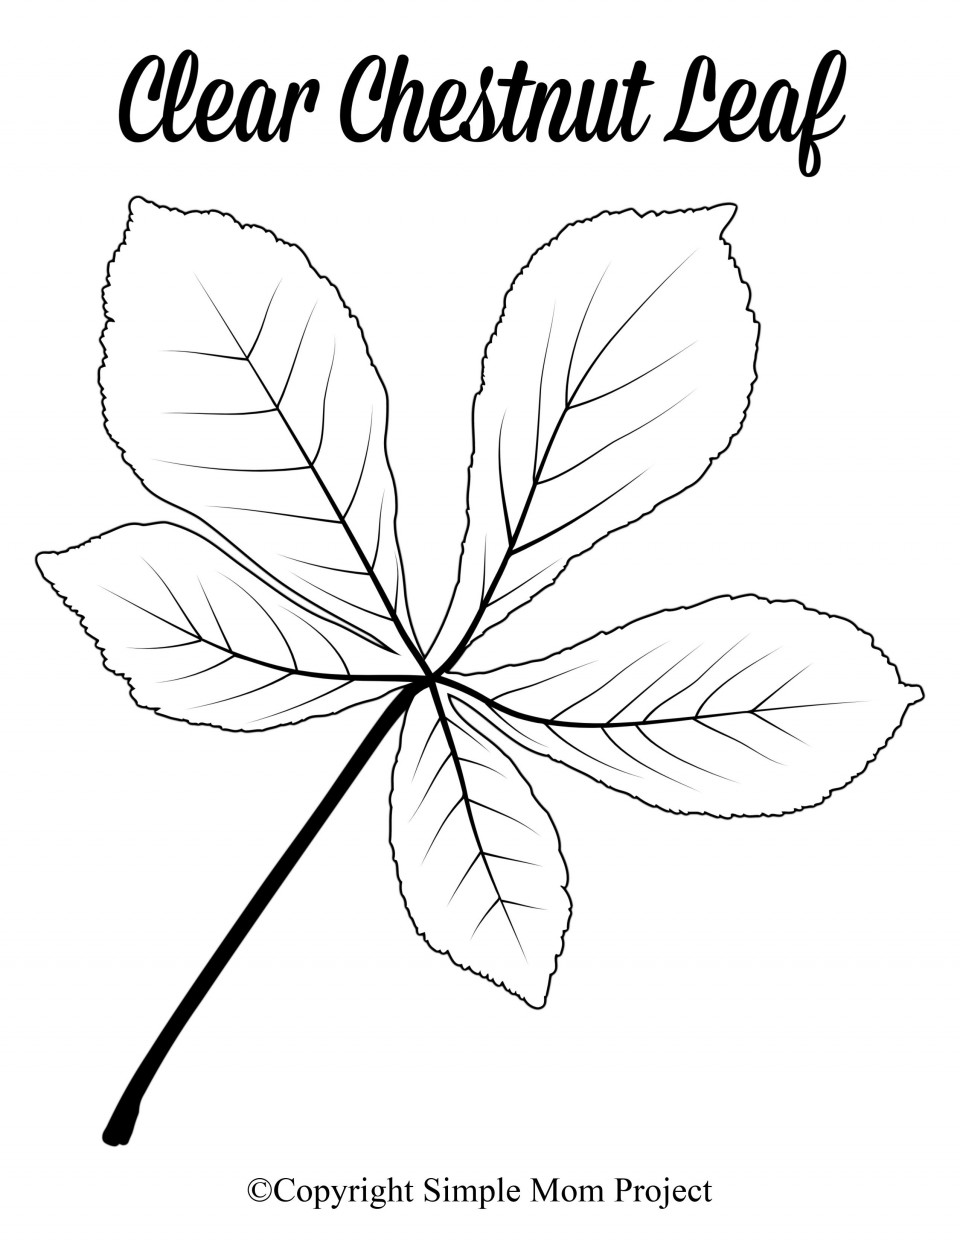 008 Fascinating Leaf Template With Line Picture  Fall Printable Blank960